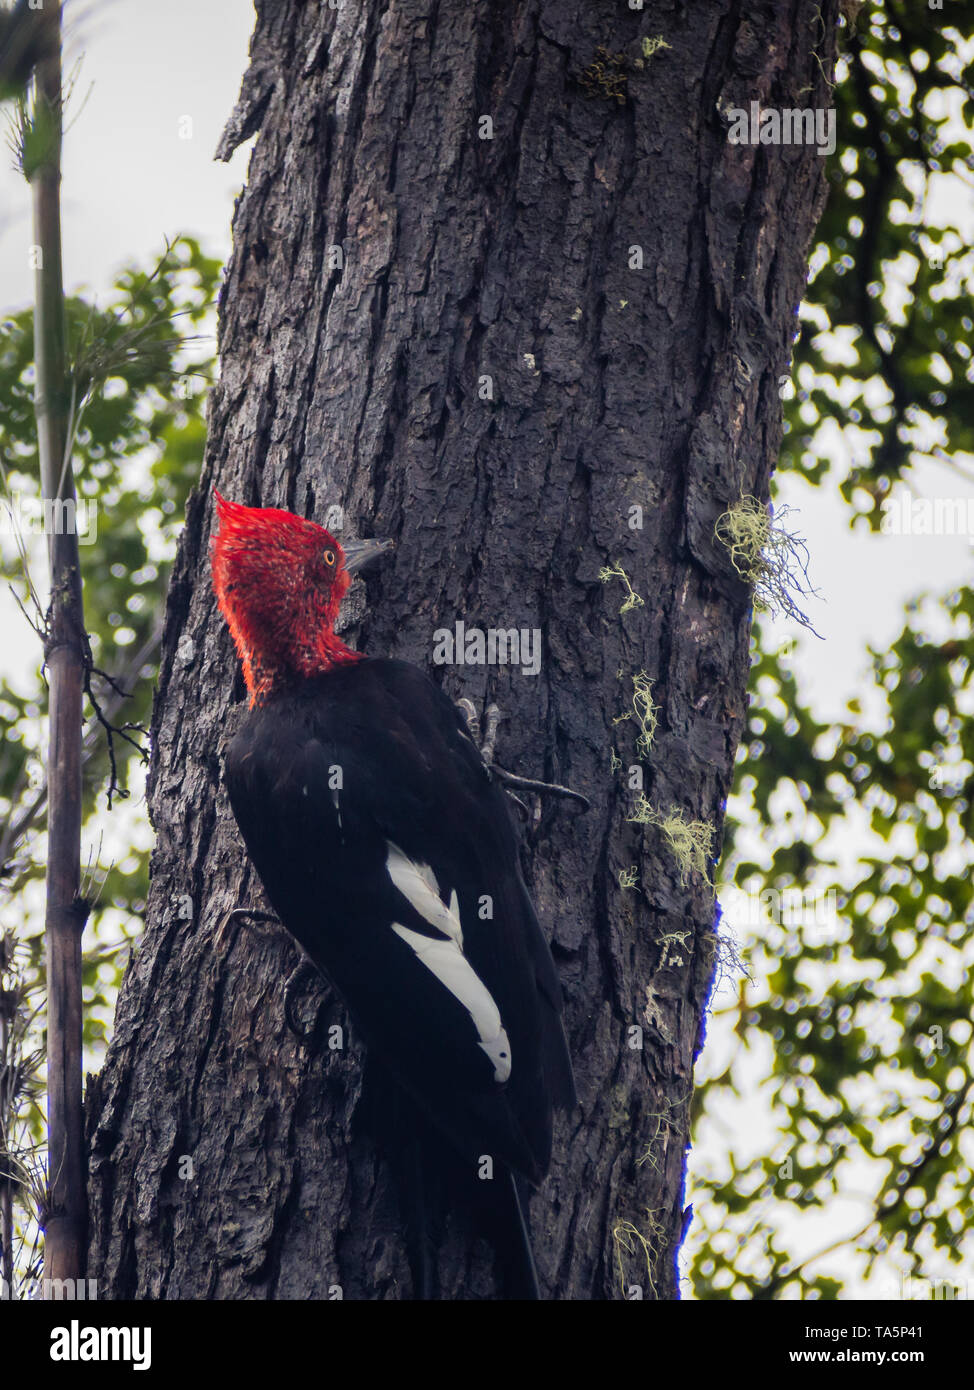 Patagonian giant woodpecker bird perched on the trunk of a tree in Chile - Stock Image